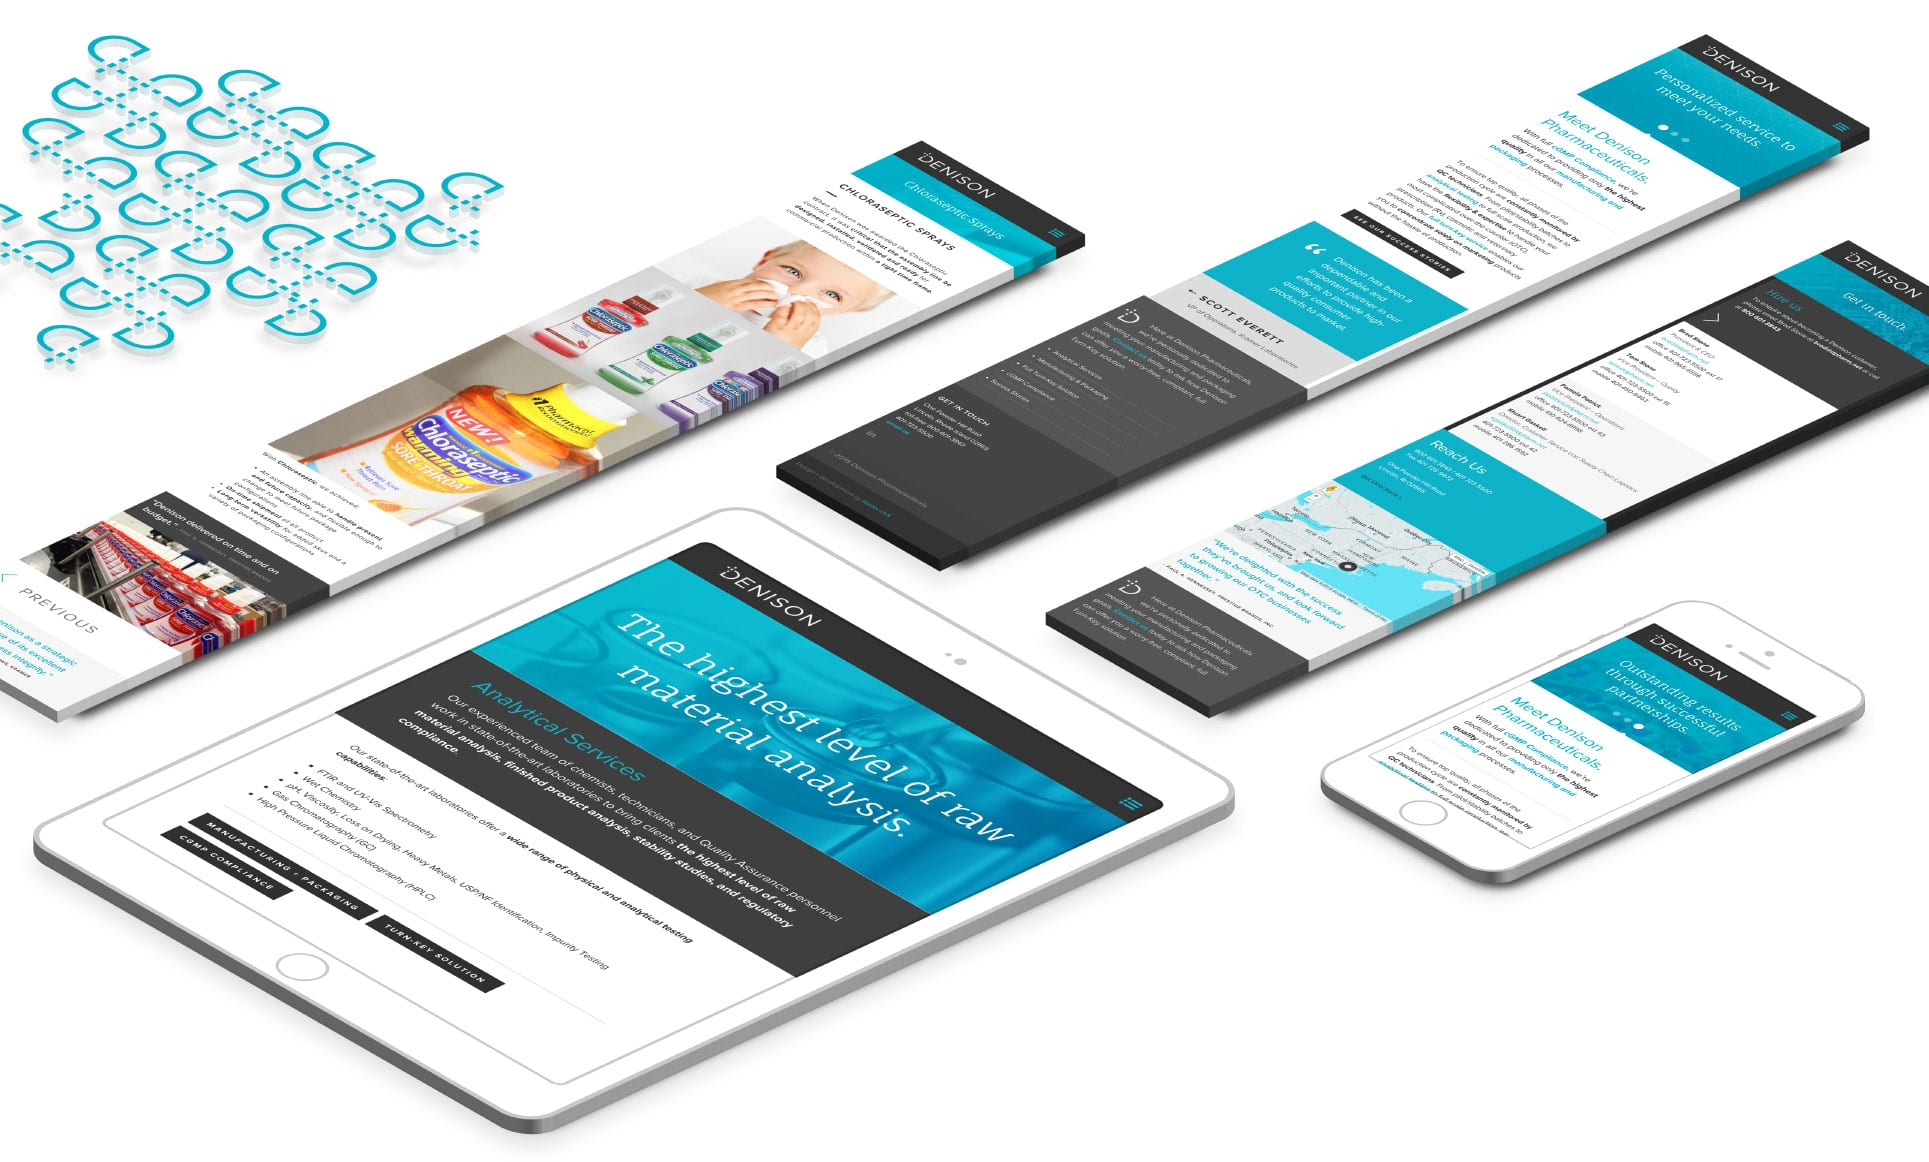 responsive website design and development